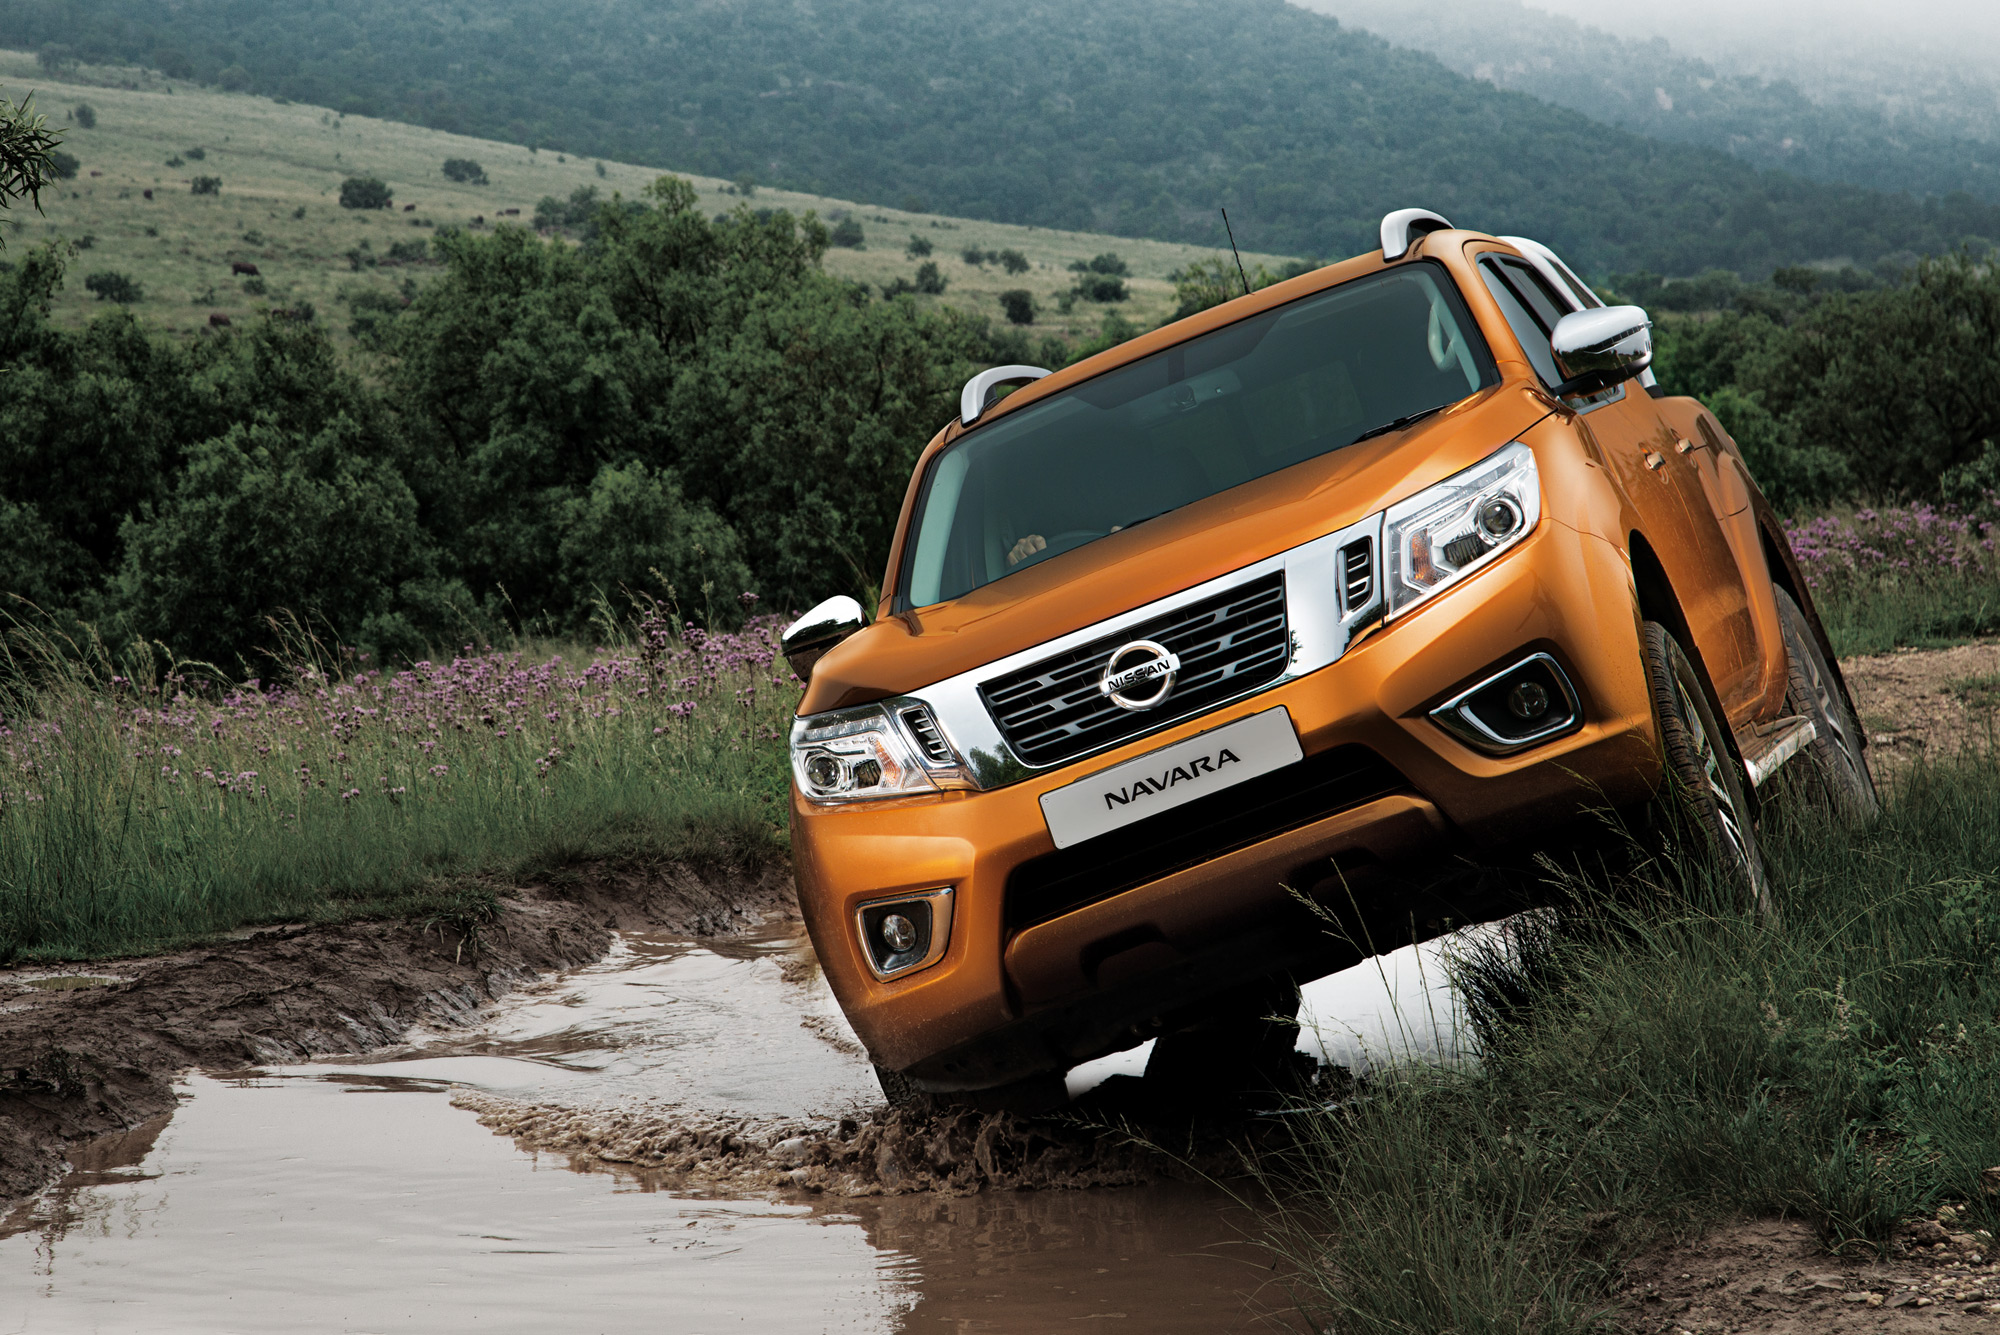 <p>The Navara comes into its own where it matters most – inside the cabin. Feeling solid and refined, it has taken a great leap forward over the old Navara, and brings interior comfort levels right up there with the likes of the gentleman's bakkie, the VW Amarok.</p>